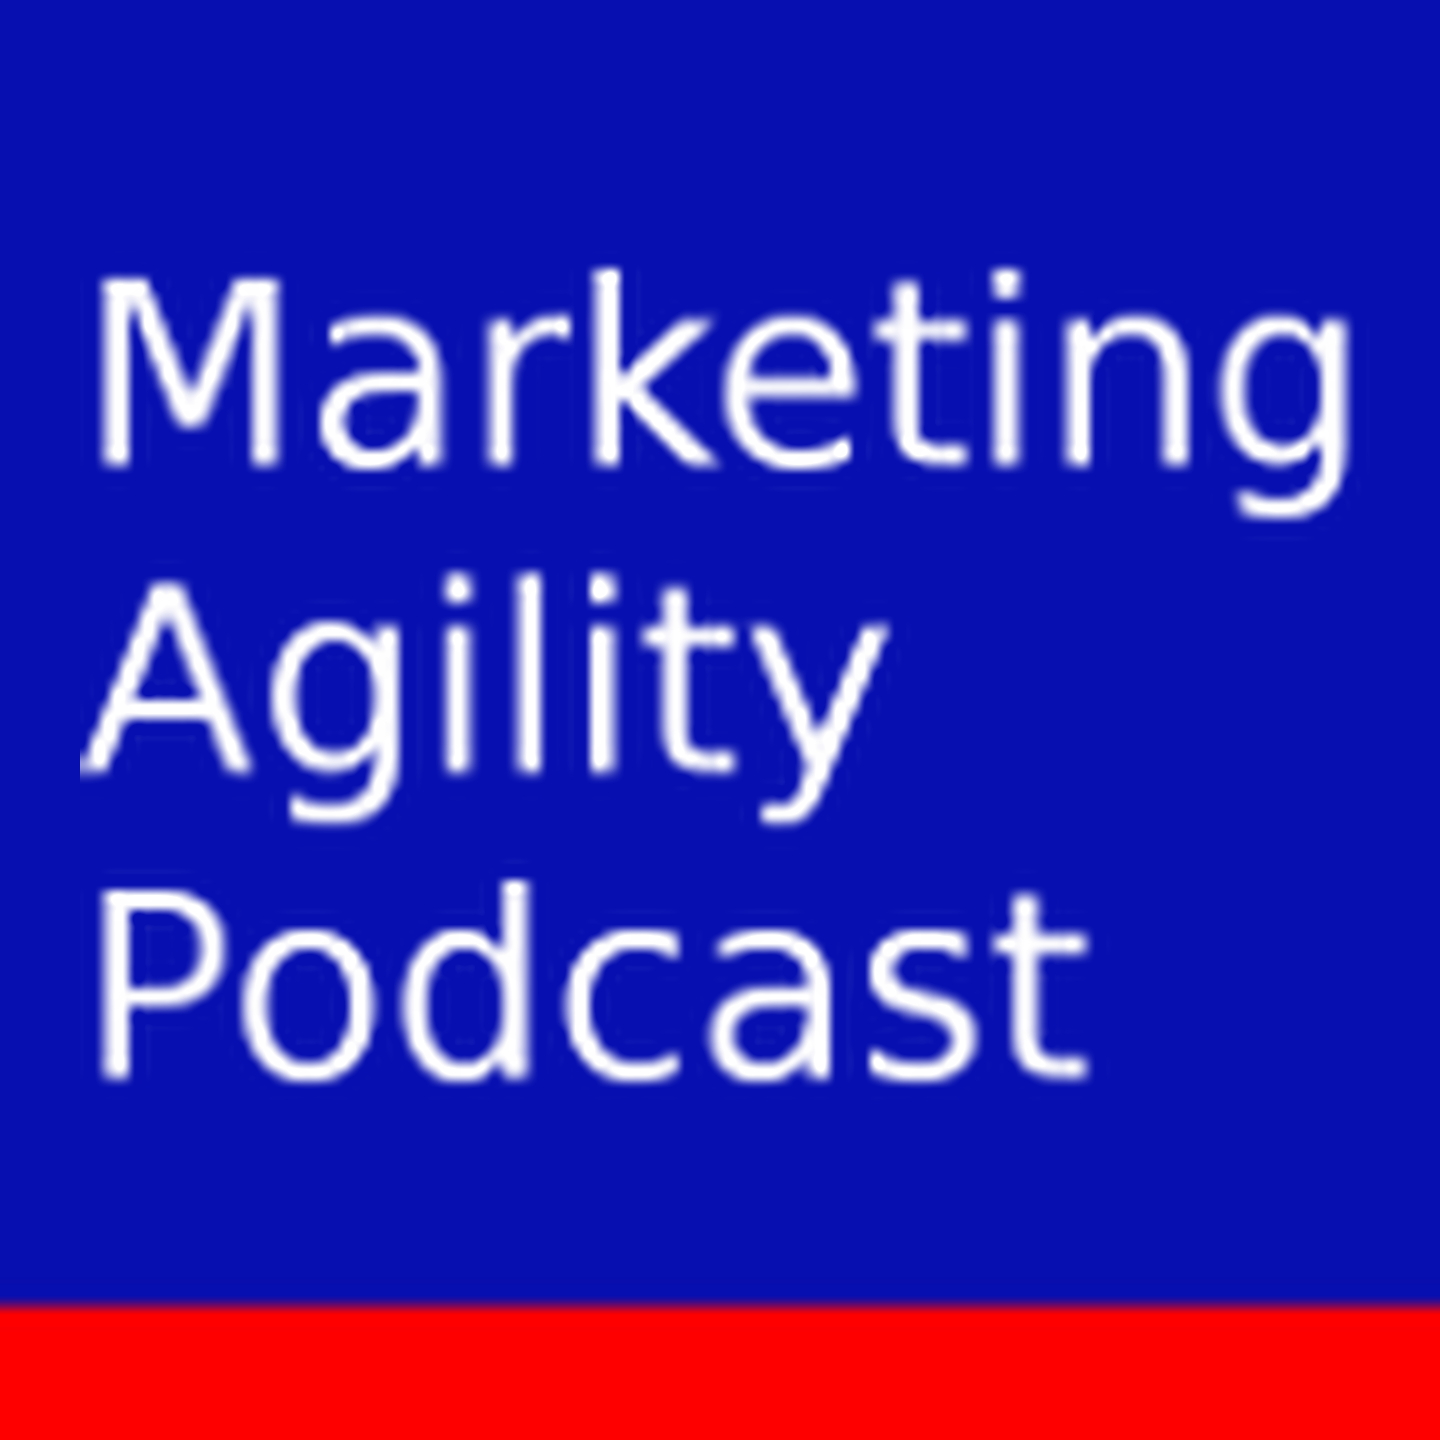 Marketing Agility Podcast